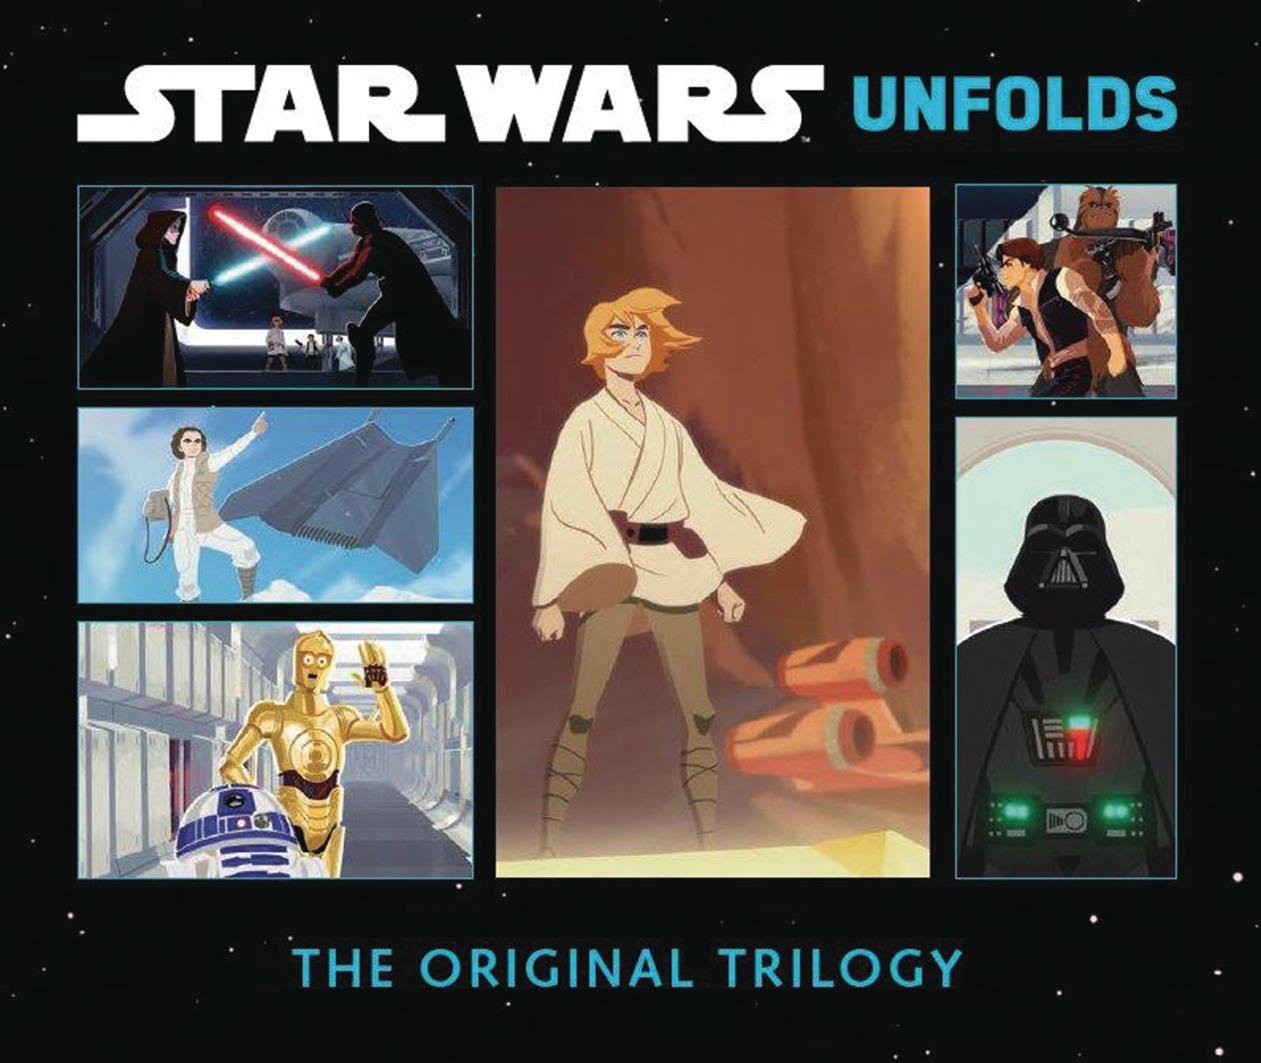 Star Wars Unfolds: The Original Trilogy